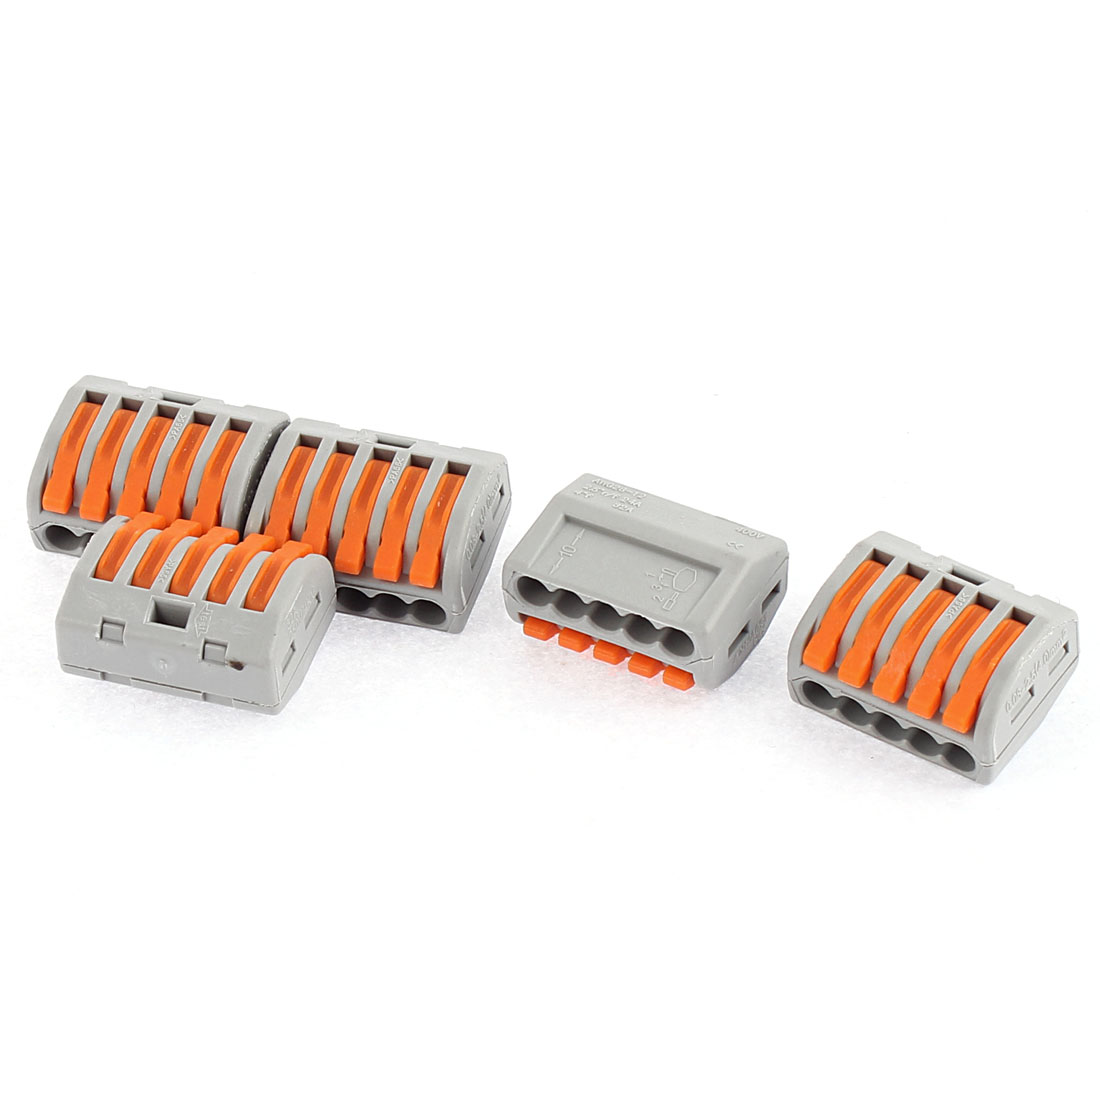 AC 250V 32A Lever Lock 5 Poles Push Cable Wire Connector Terminal Block 5 Pcs